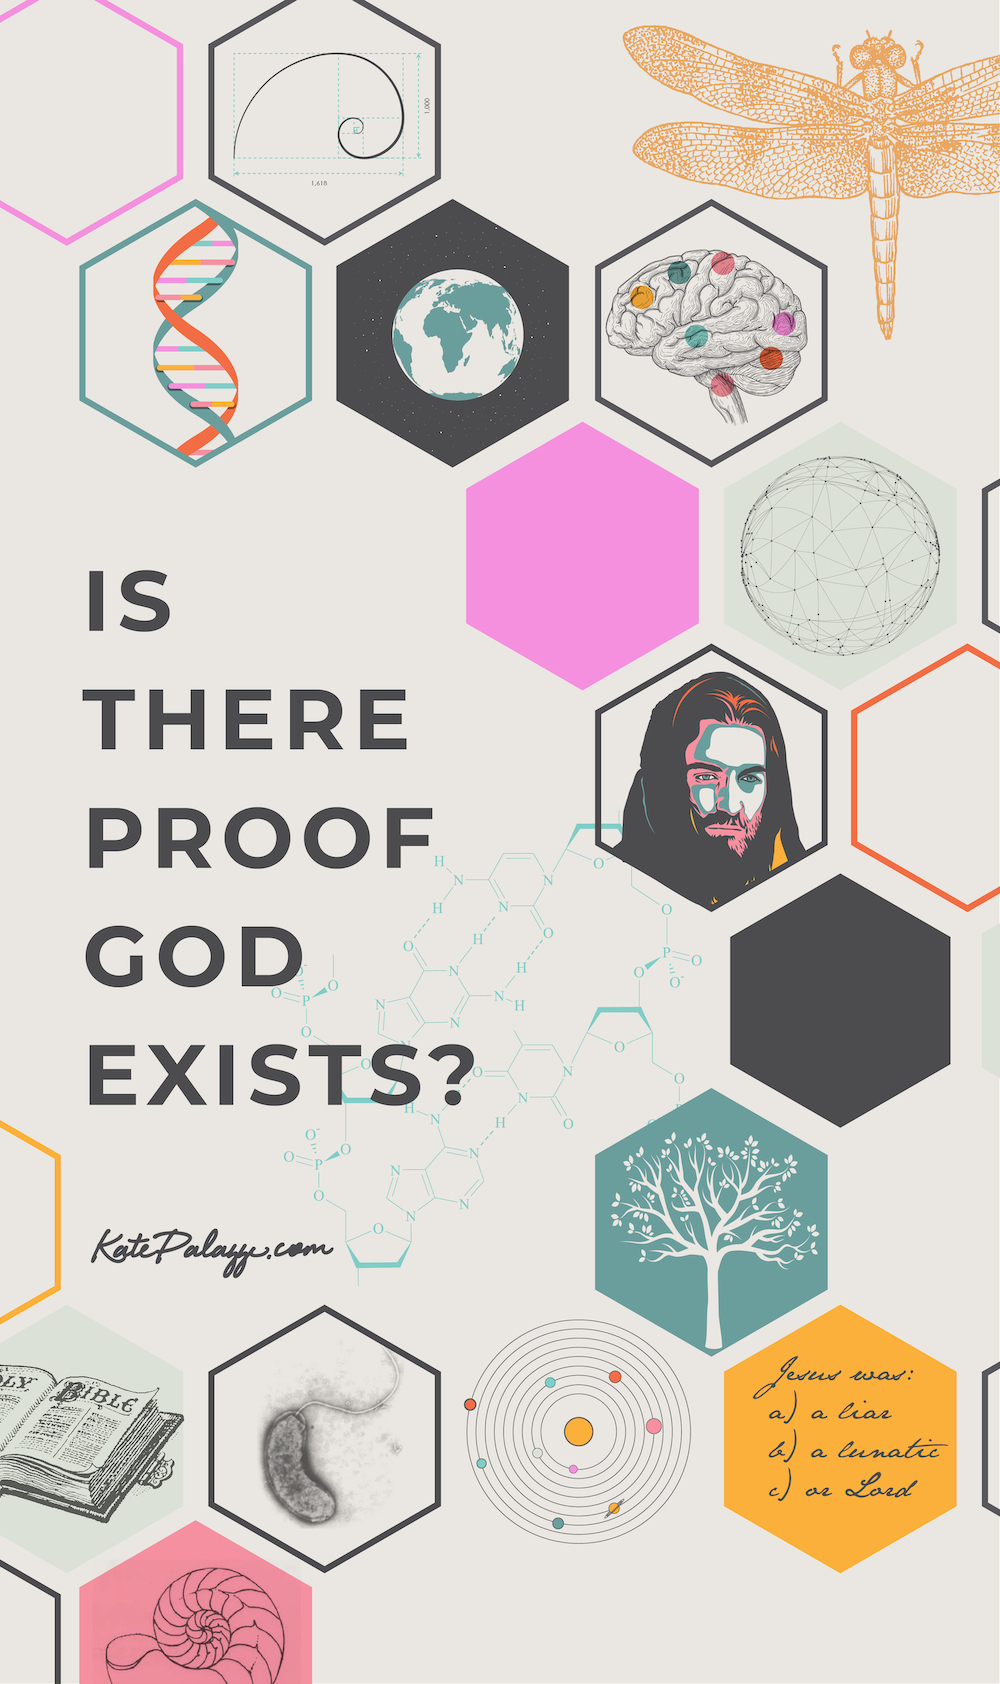 Is there proof God exists?